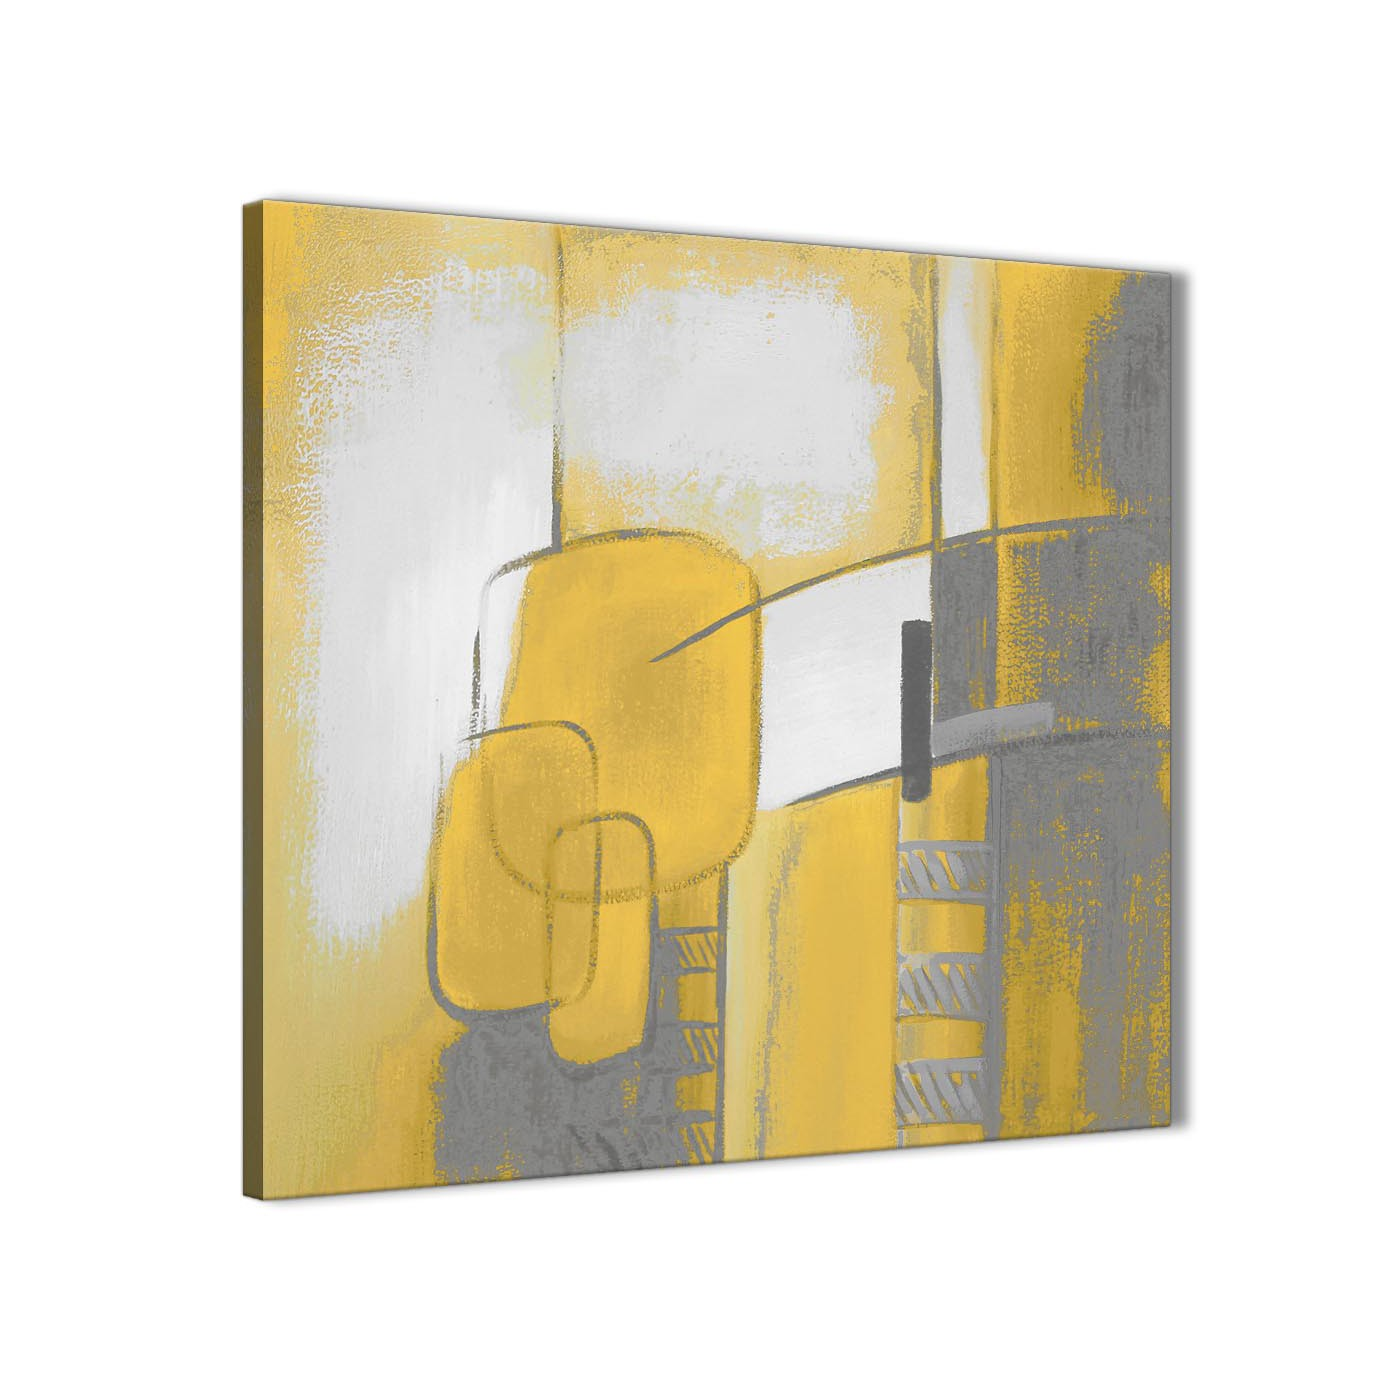 mustard yellow grey painting abstract bedroom canvas wall art decor 1s419l 79cm square print. Black Bedroom Furniture Sets. Home Design Ideas